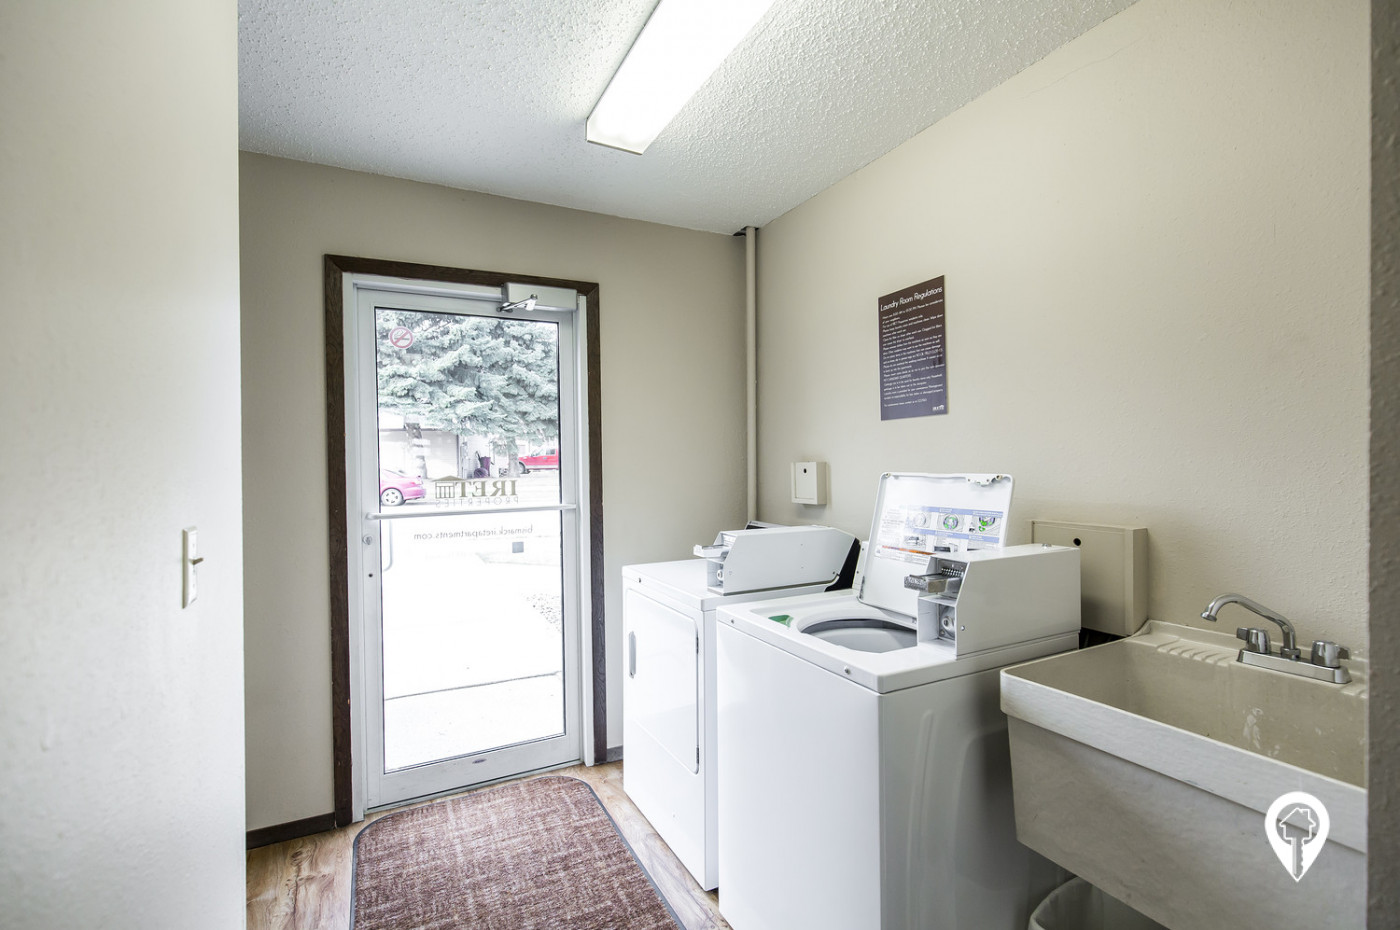 Crestview-Apartments-On-Site-Laundry-Facilities